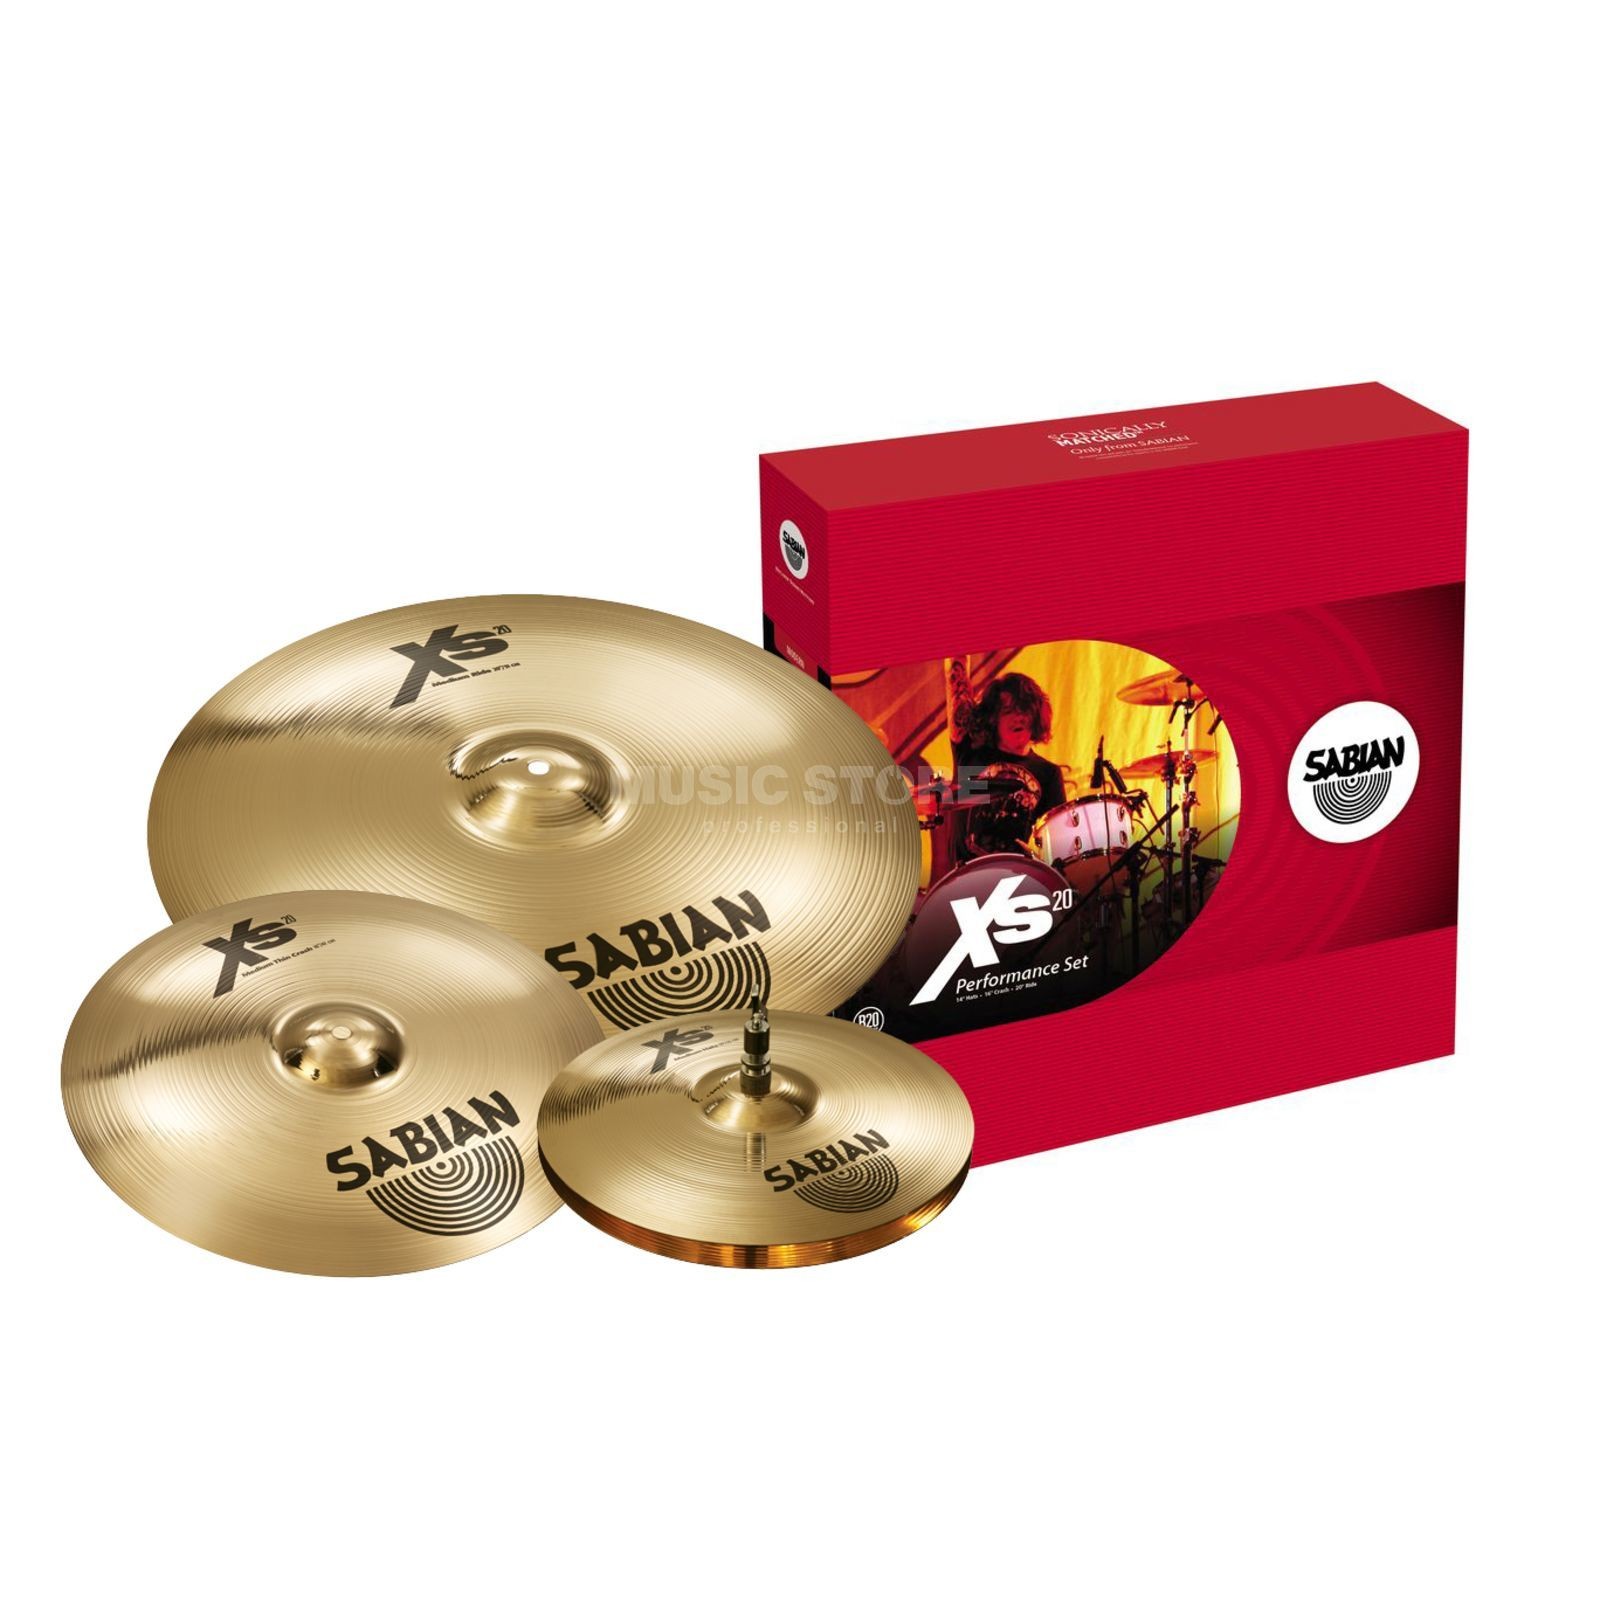 Sabian XS20 Cymbal Set Performance, Brilliant Finish Imagem do produto